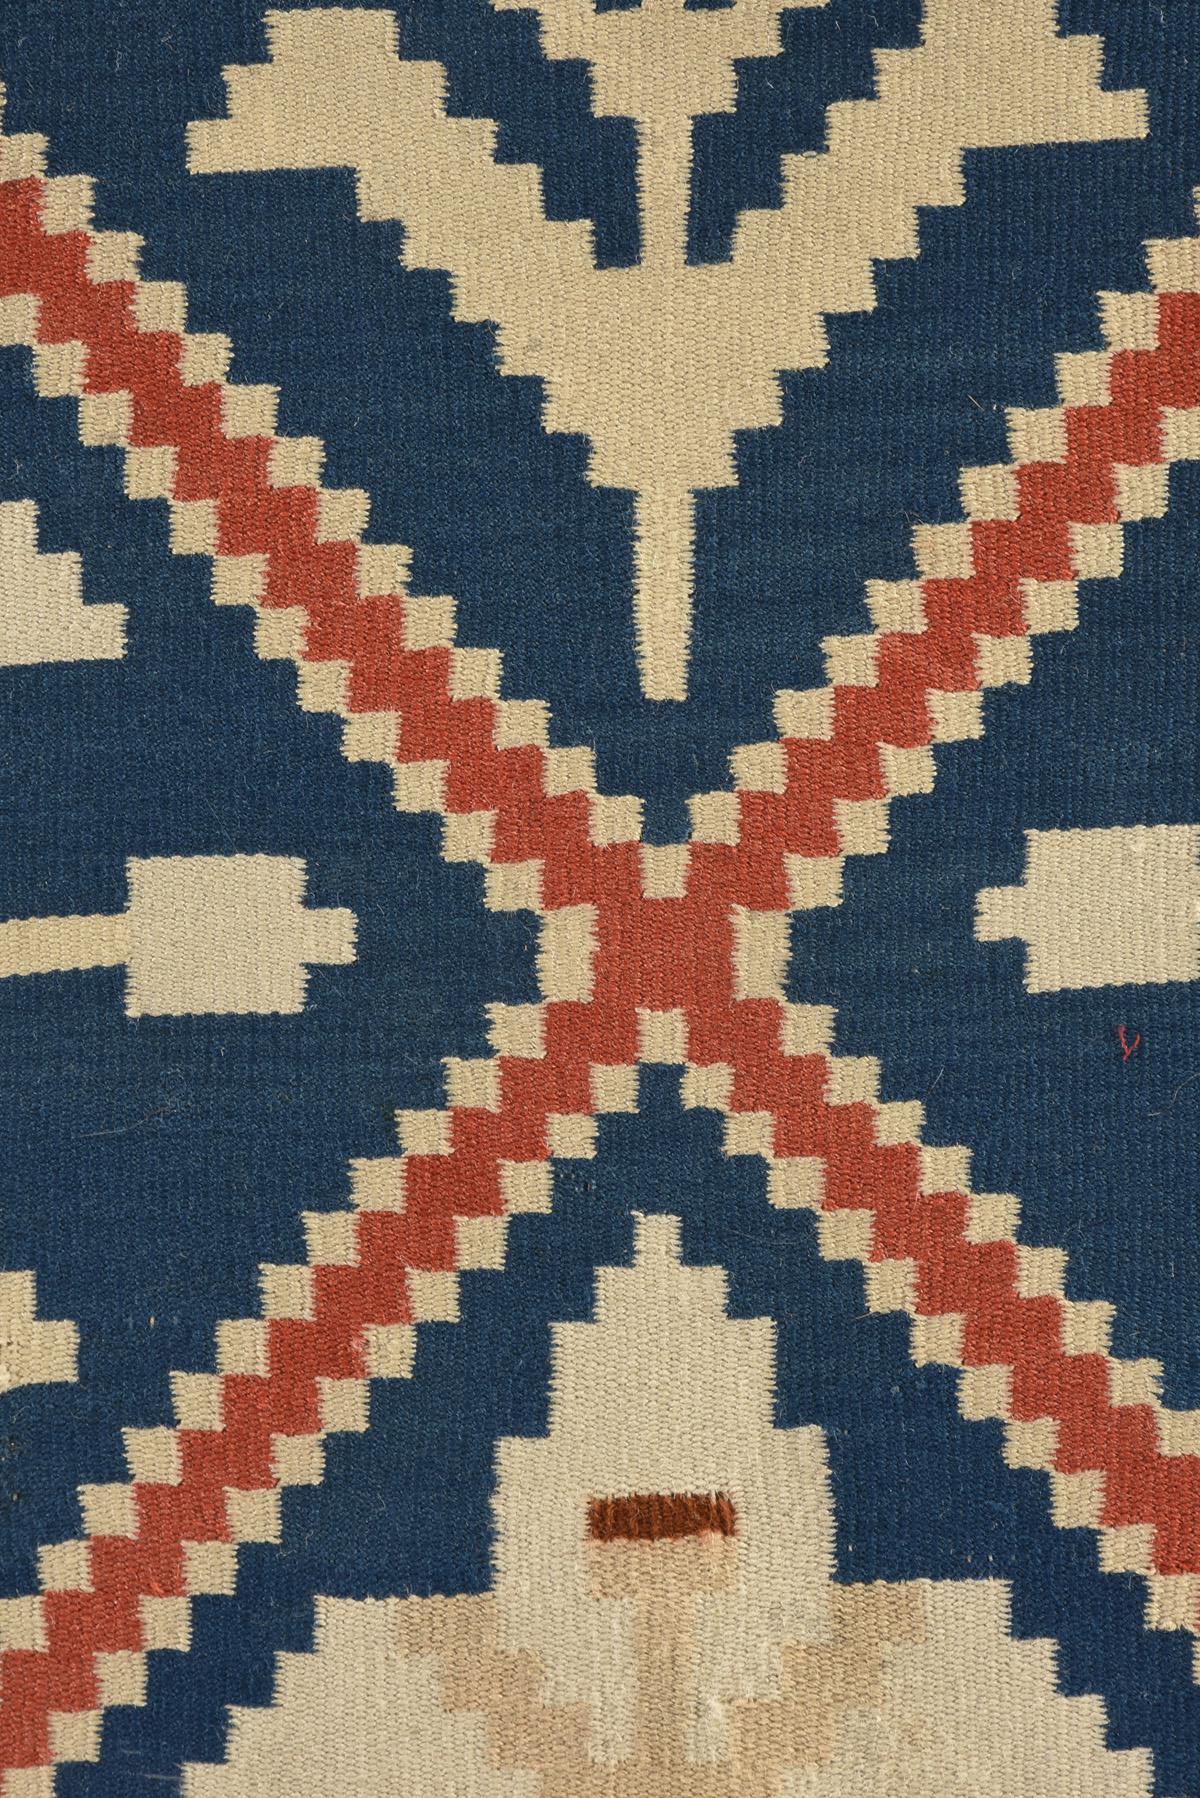 Lot 7 - A SCANDINAVIAN LILY PATTERNED FLAT WEAVE WOOL COVERLET, POSSIBLY SOGN NORWAY, EARLY 20TH CENTURY, of